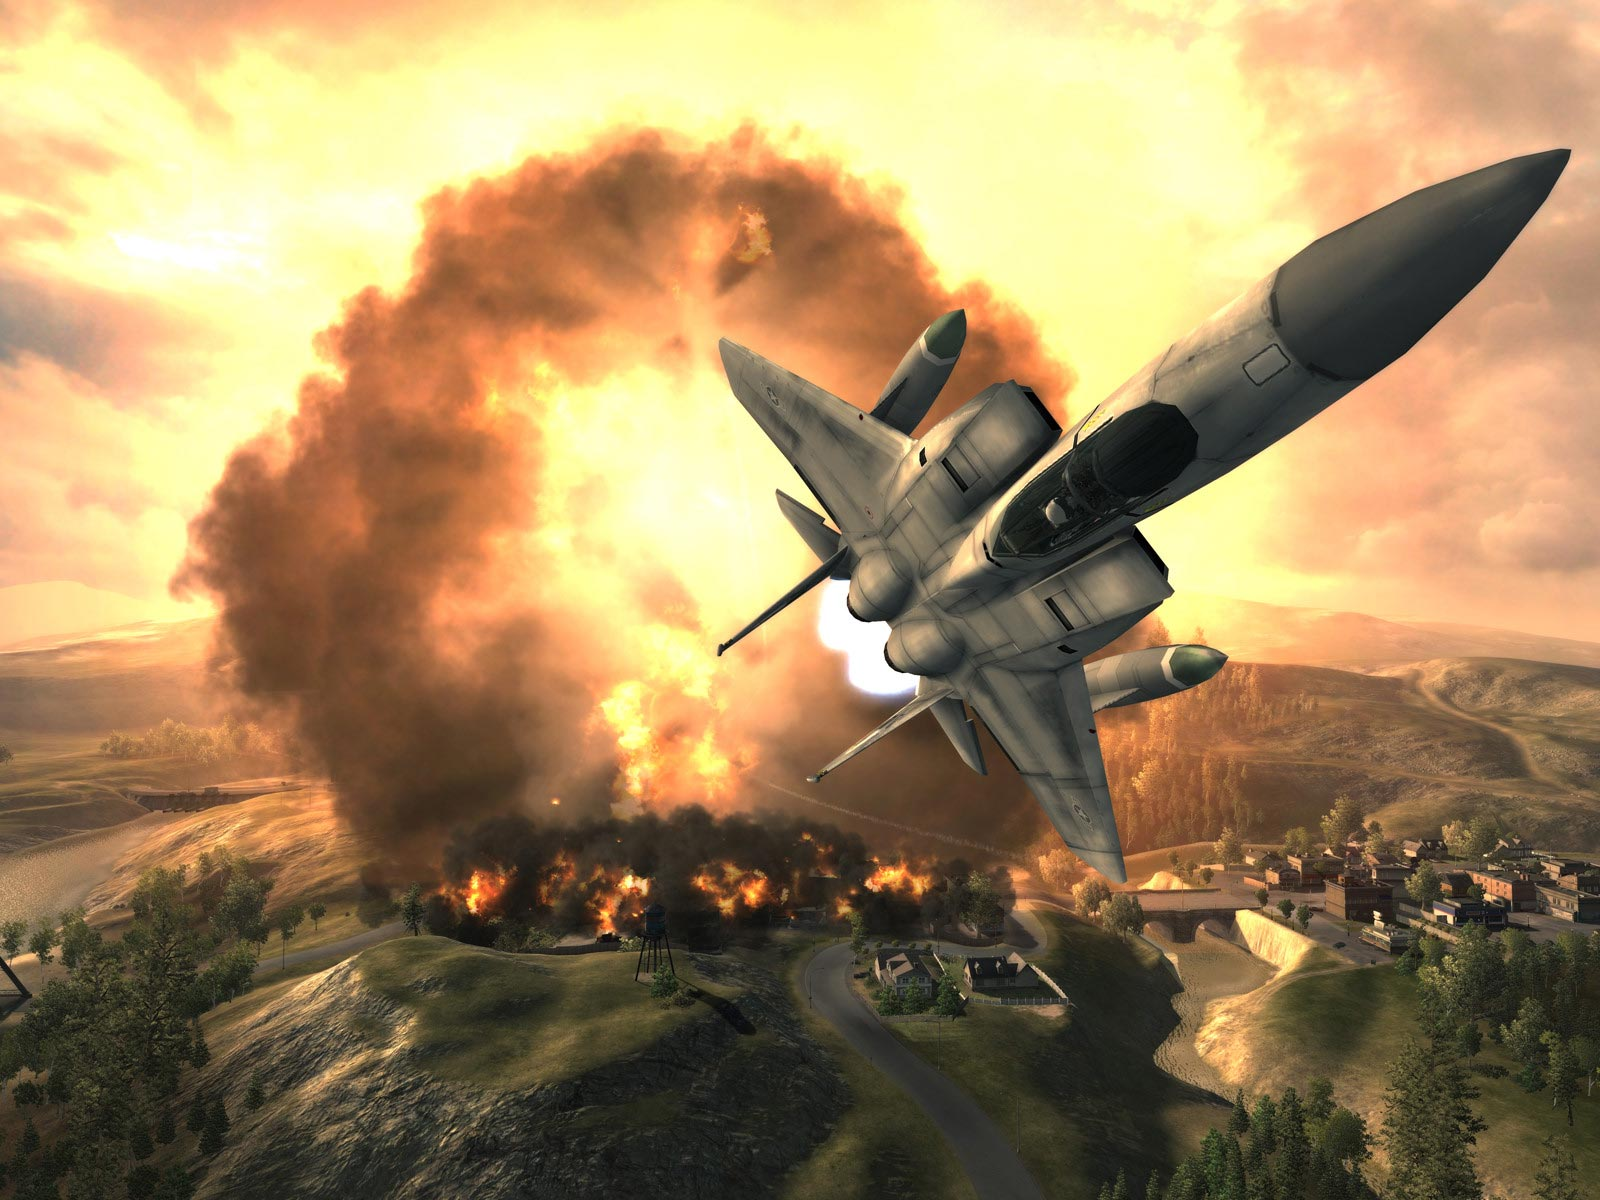 Ace combat clipart clip freeuse library Ace combat 6 clipart - ClipartFox clip freeuse library